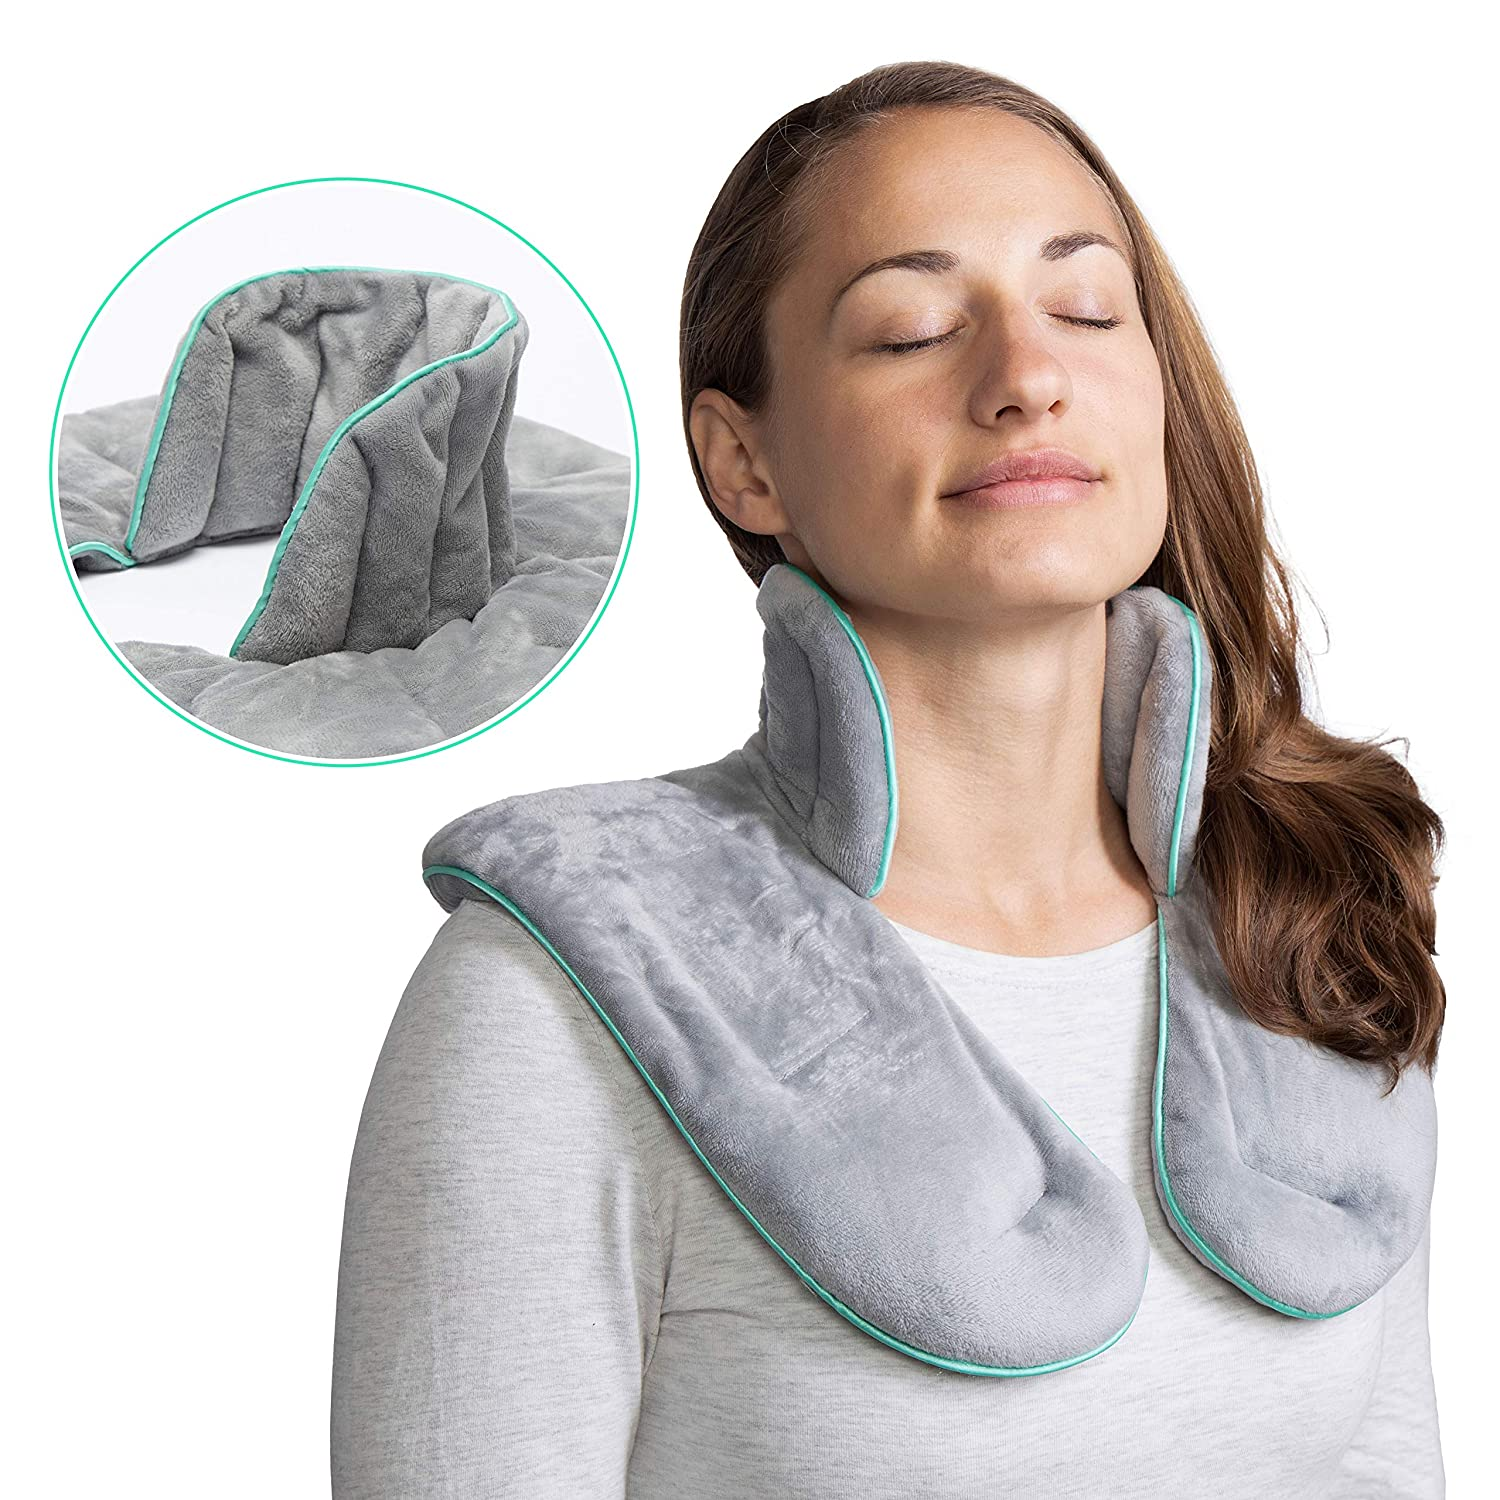 Microwaveable Neck & Shoulder Wrap by Vitnesse - Weighted Herbal Aromatherapy Heating Pad for Men & Women - Comforting Compress for Muscle Pain, Anxiety & Stress Relief